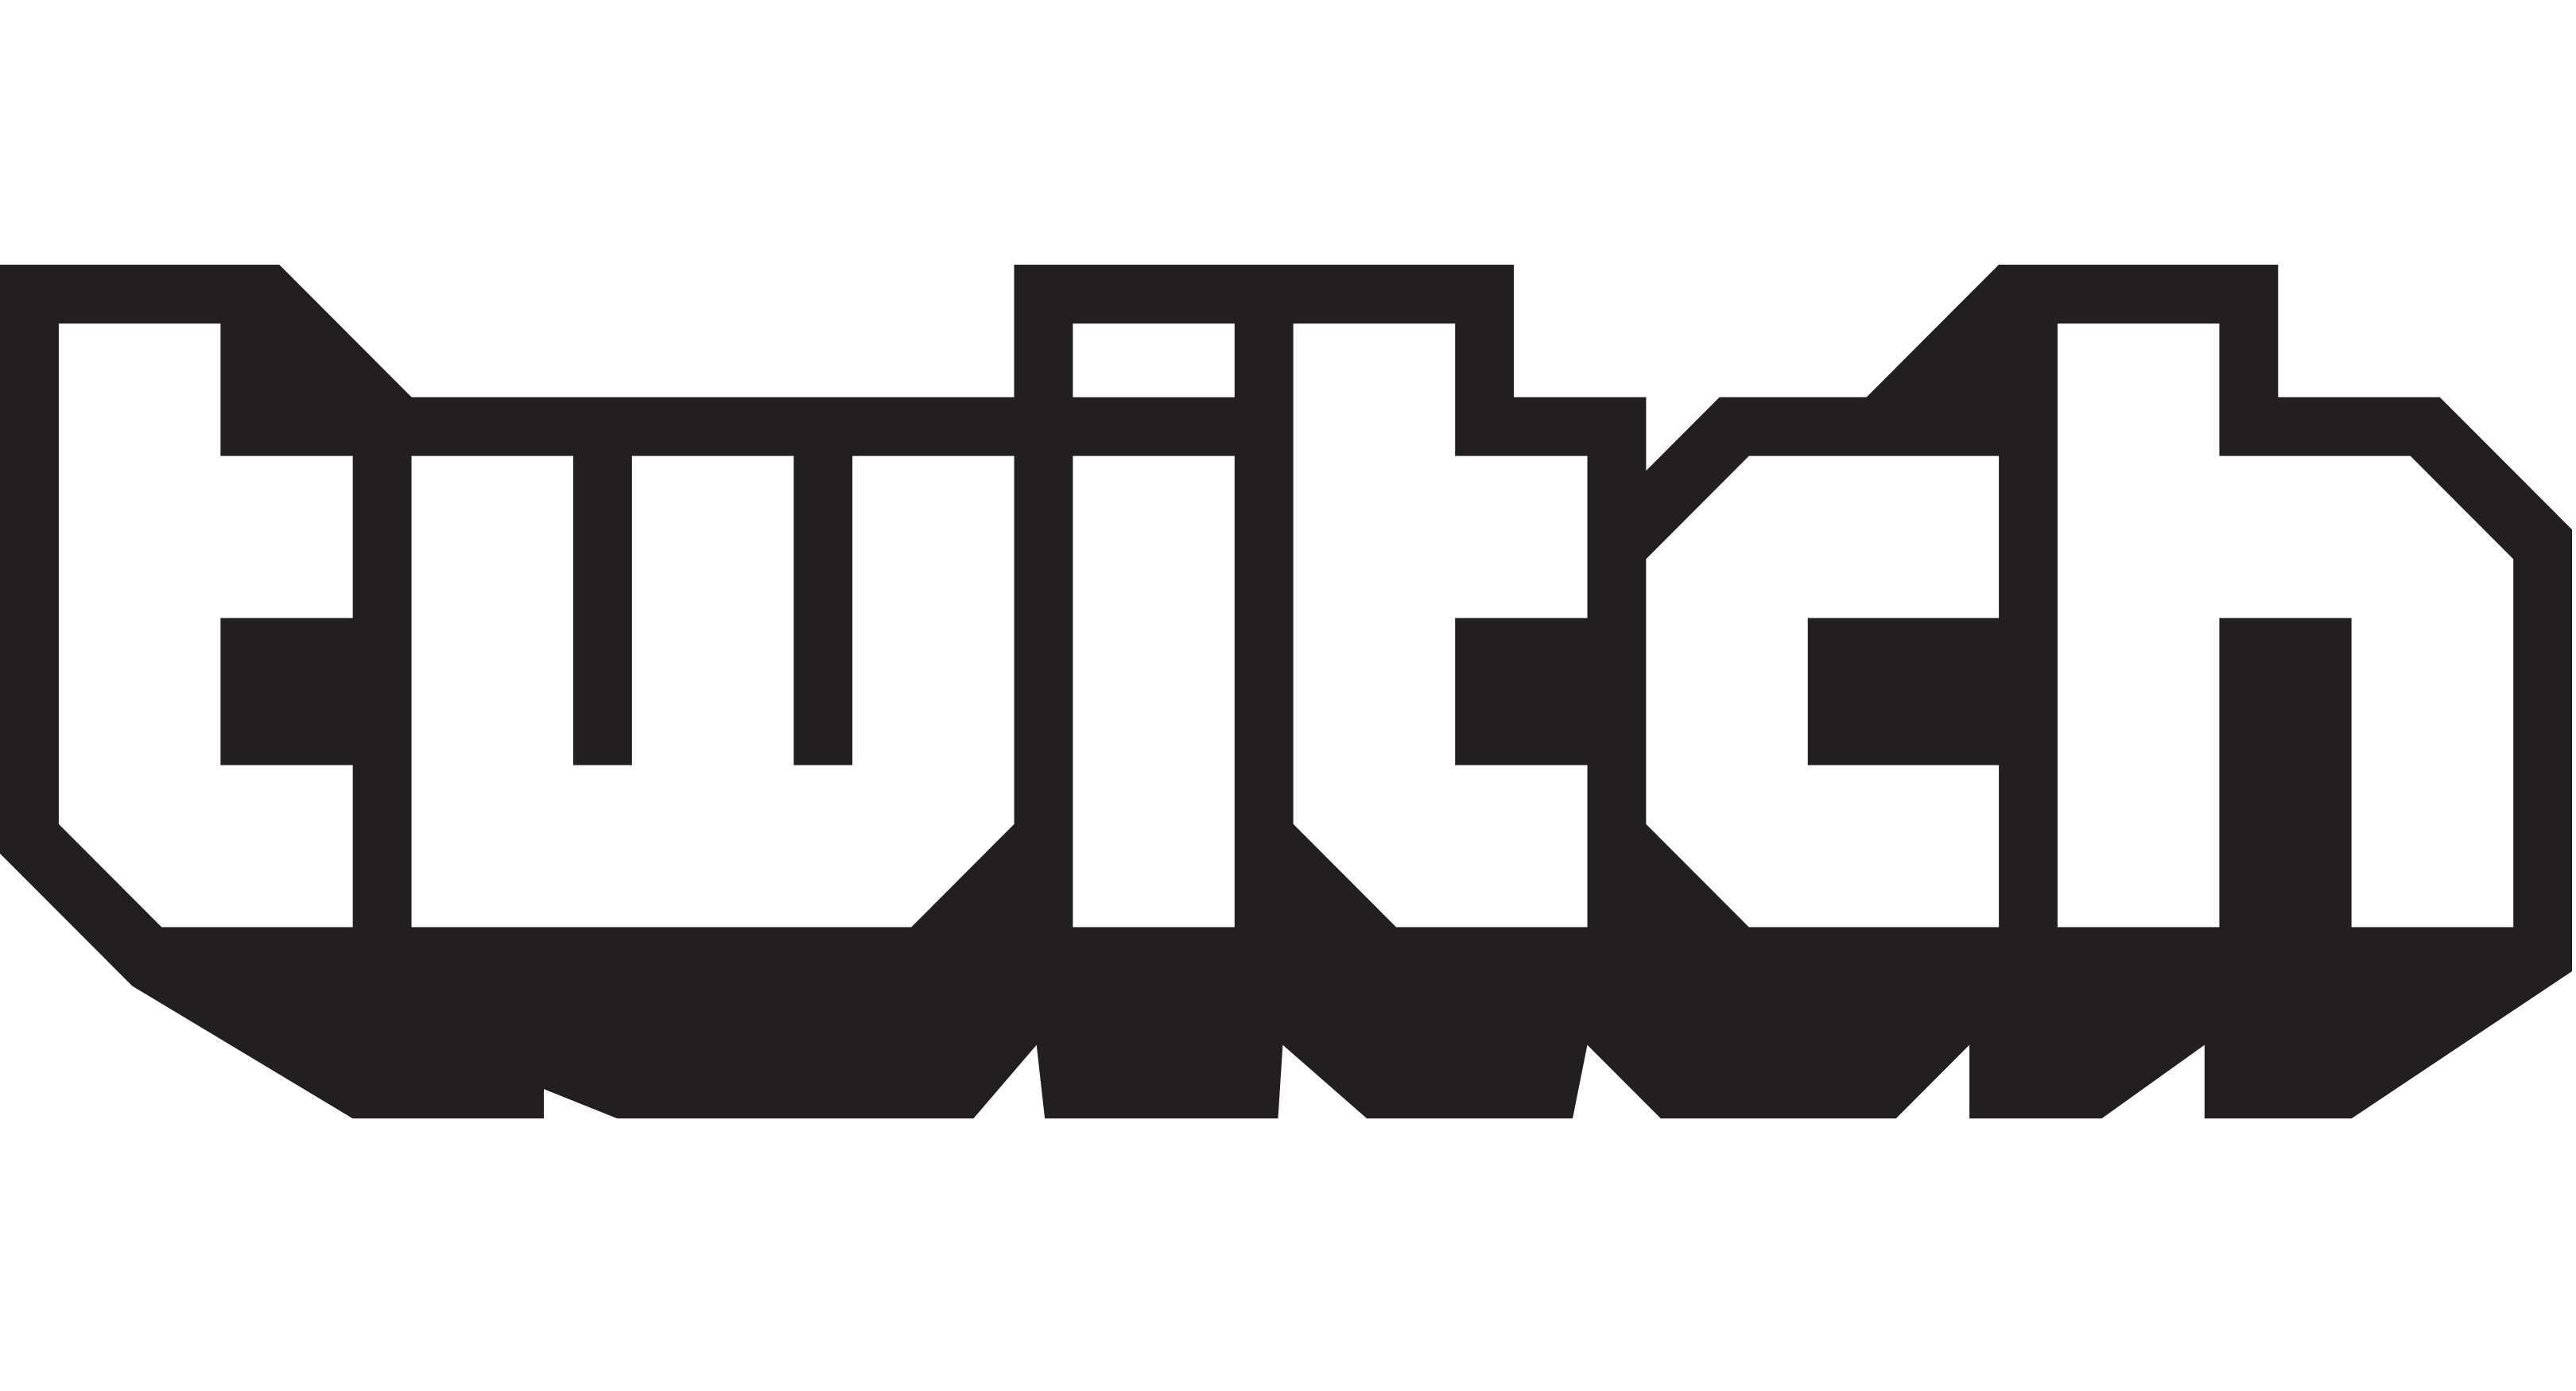 E3 Does Well for Twitch, Company Awarded Two World Records During Week